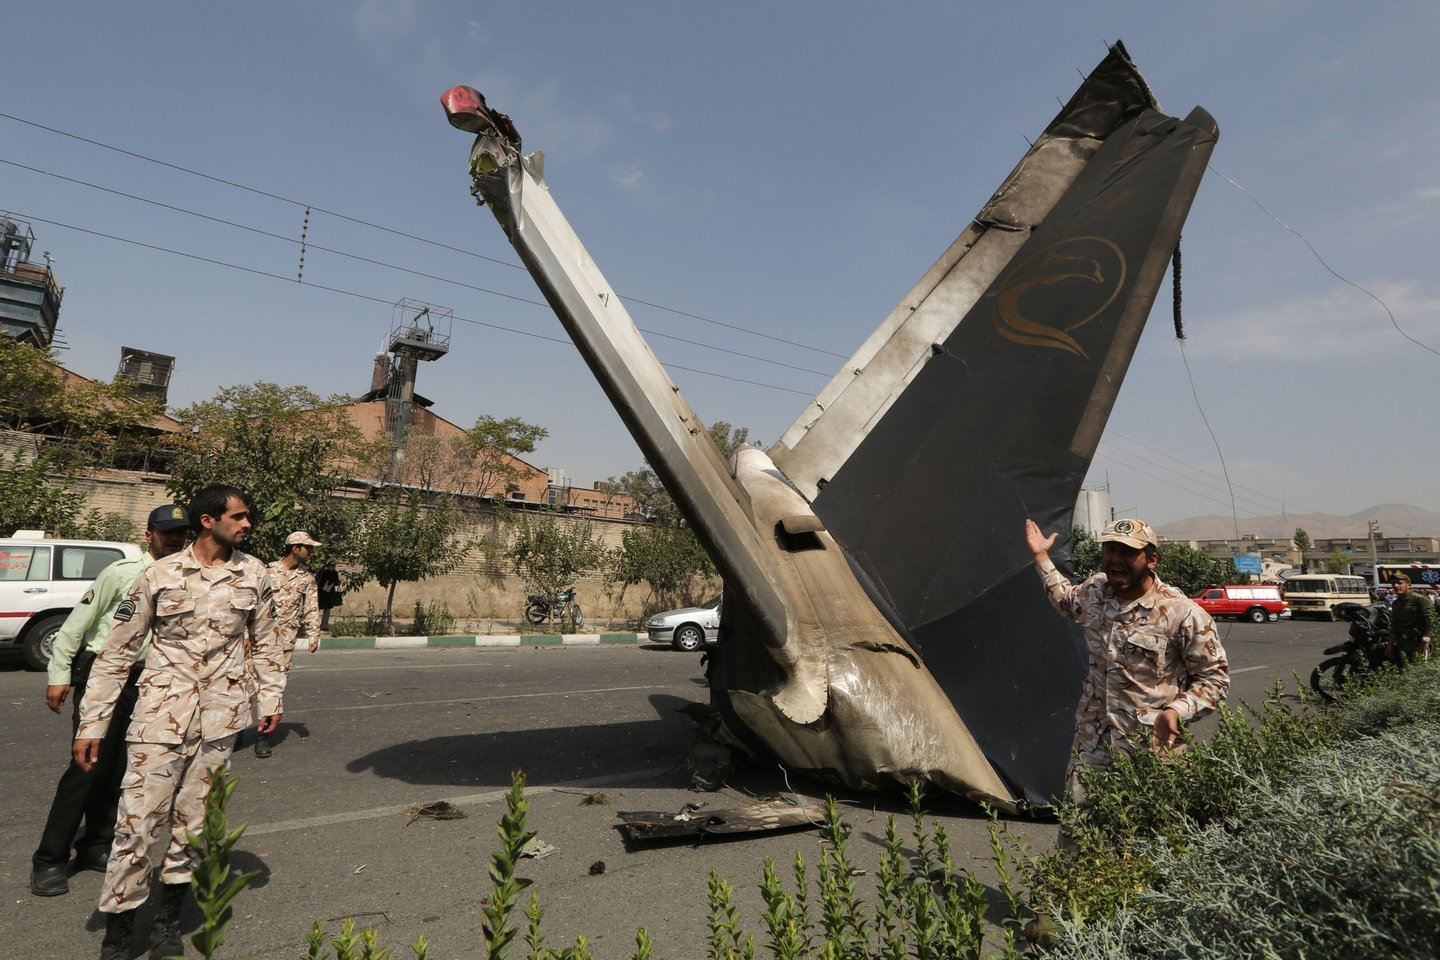 A member of the Iranian Revolutionary Guards reacts as he stands next to the remains of a plane that crashed near Tehran's Mehrabad airport on August 10, 2014. A civilian airliner crashed on take-off near the Mehrabad airport in the capital, Iranian news agencies said, with reports that almost 50 people were killed. AFP PHOTO / ATTA KENARE        (Photo credit should read ATTA KENARE/AFP/Getty Images)